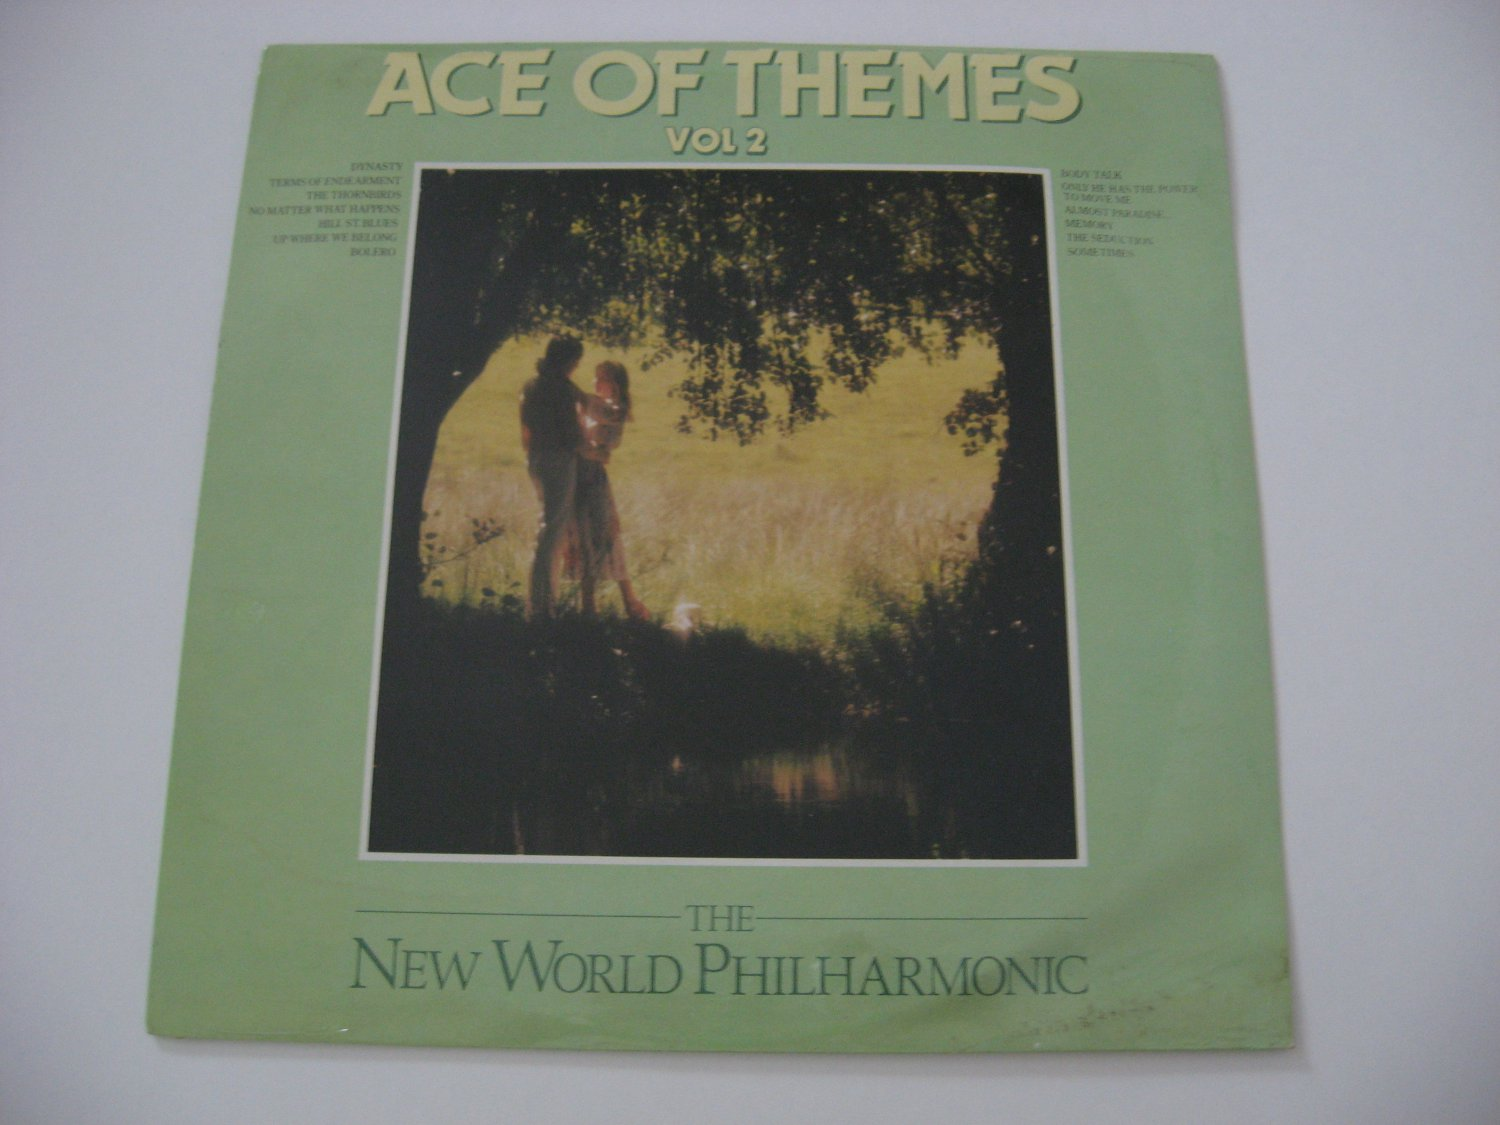 The New World Philharmonic  - Ace Of Themes  Volume 2 - Sealed!  (Vinyl Record)